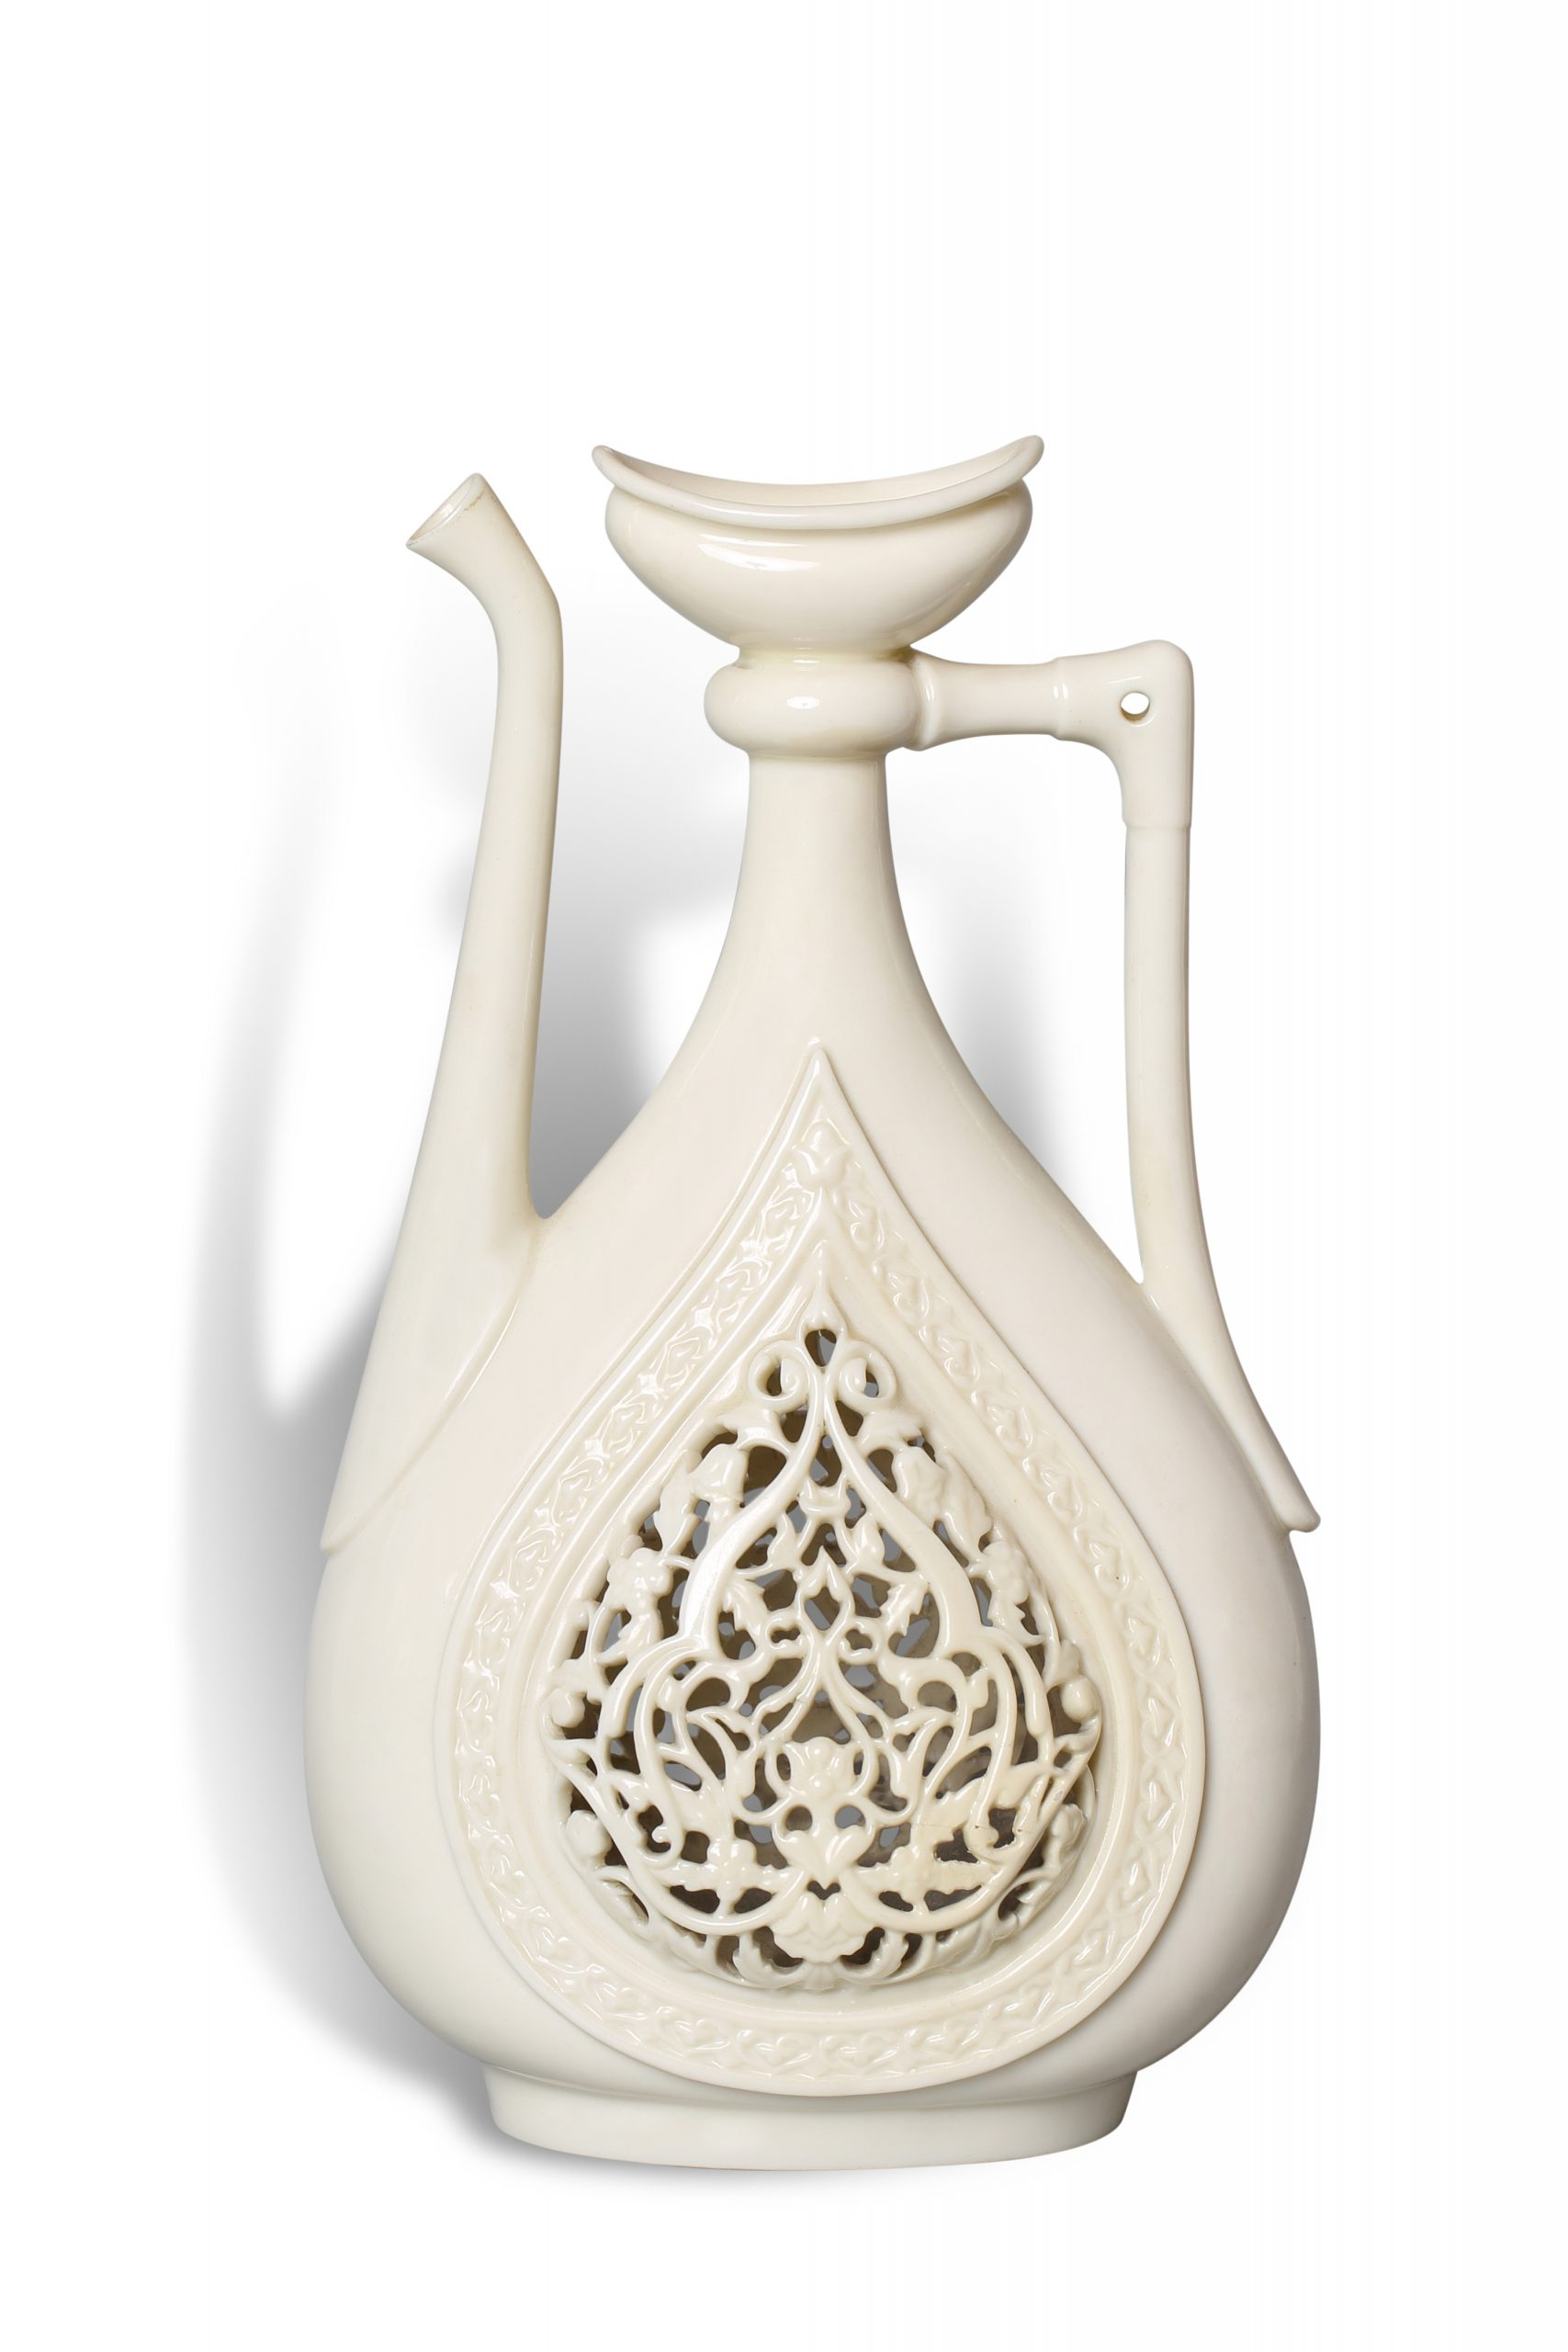 A Glass Islamic Style Openwork Ewer, with English Makers Mark